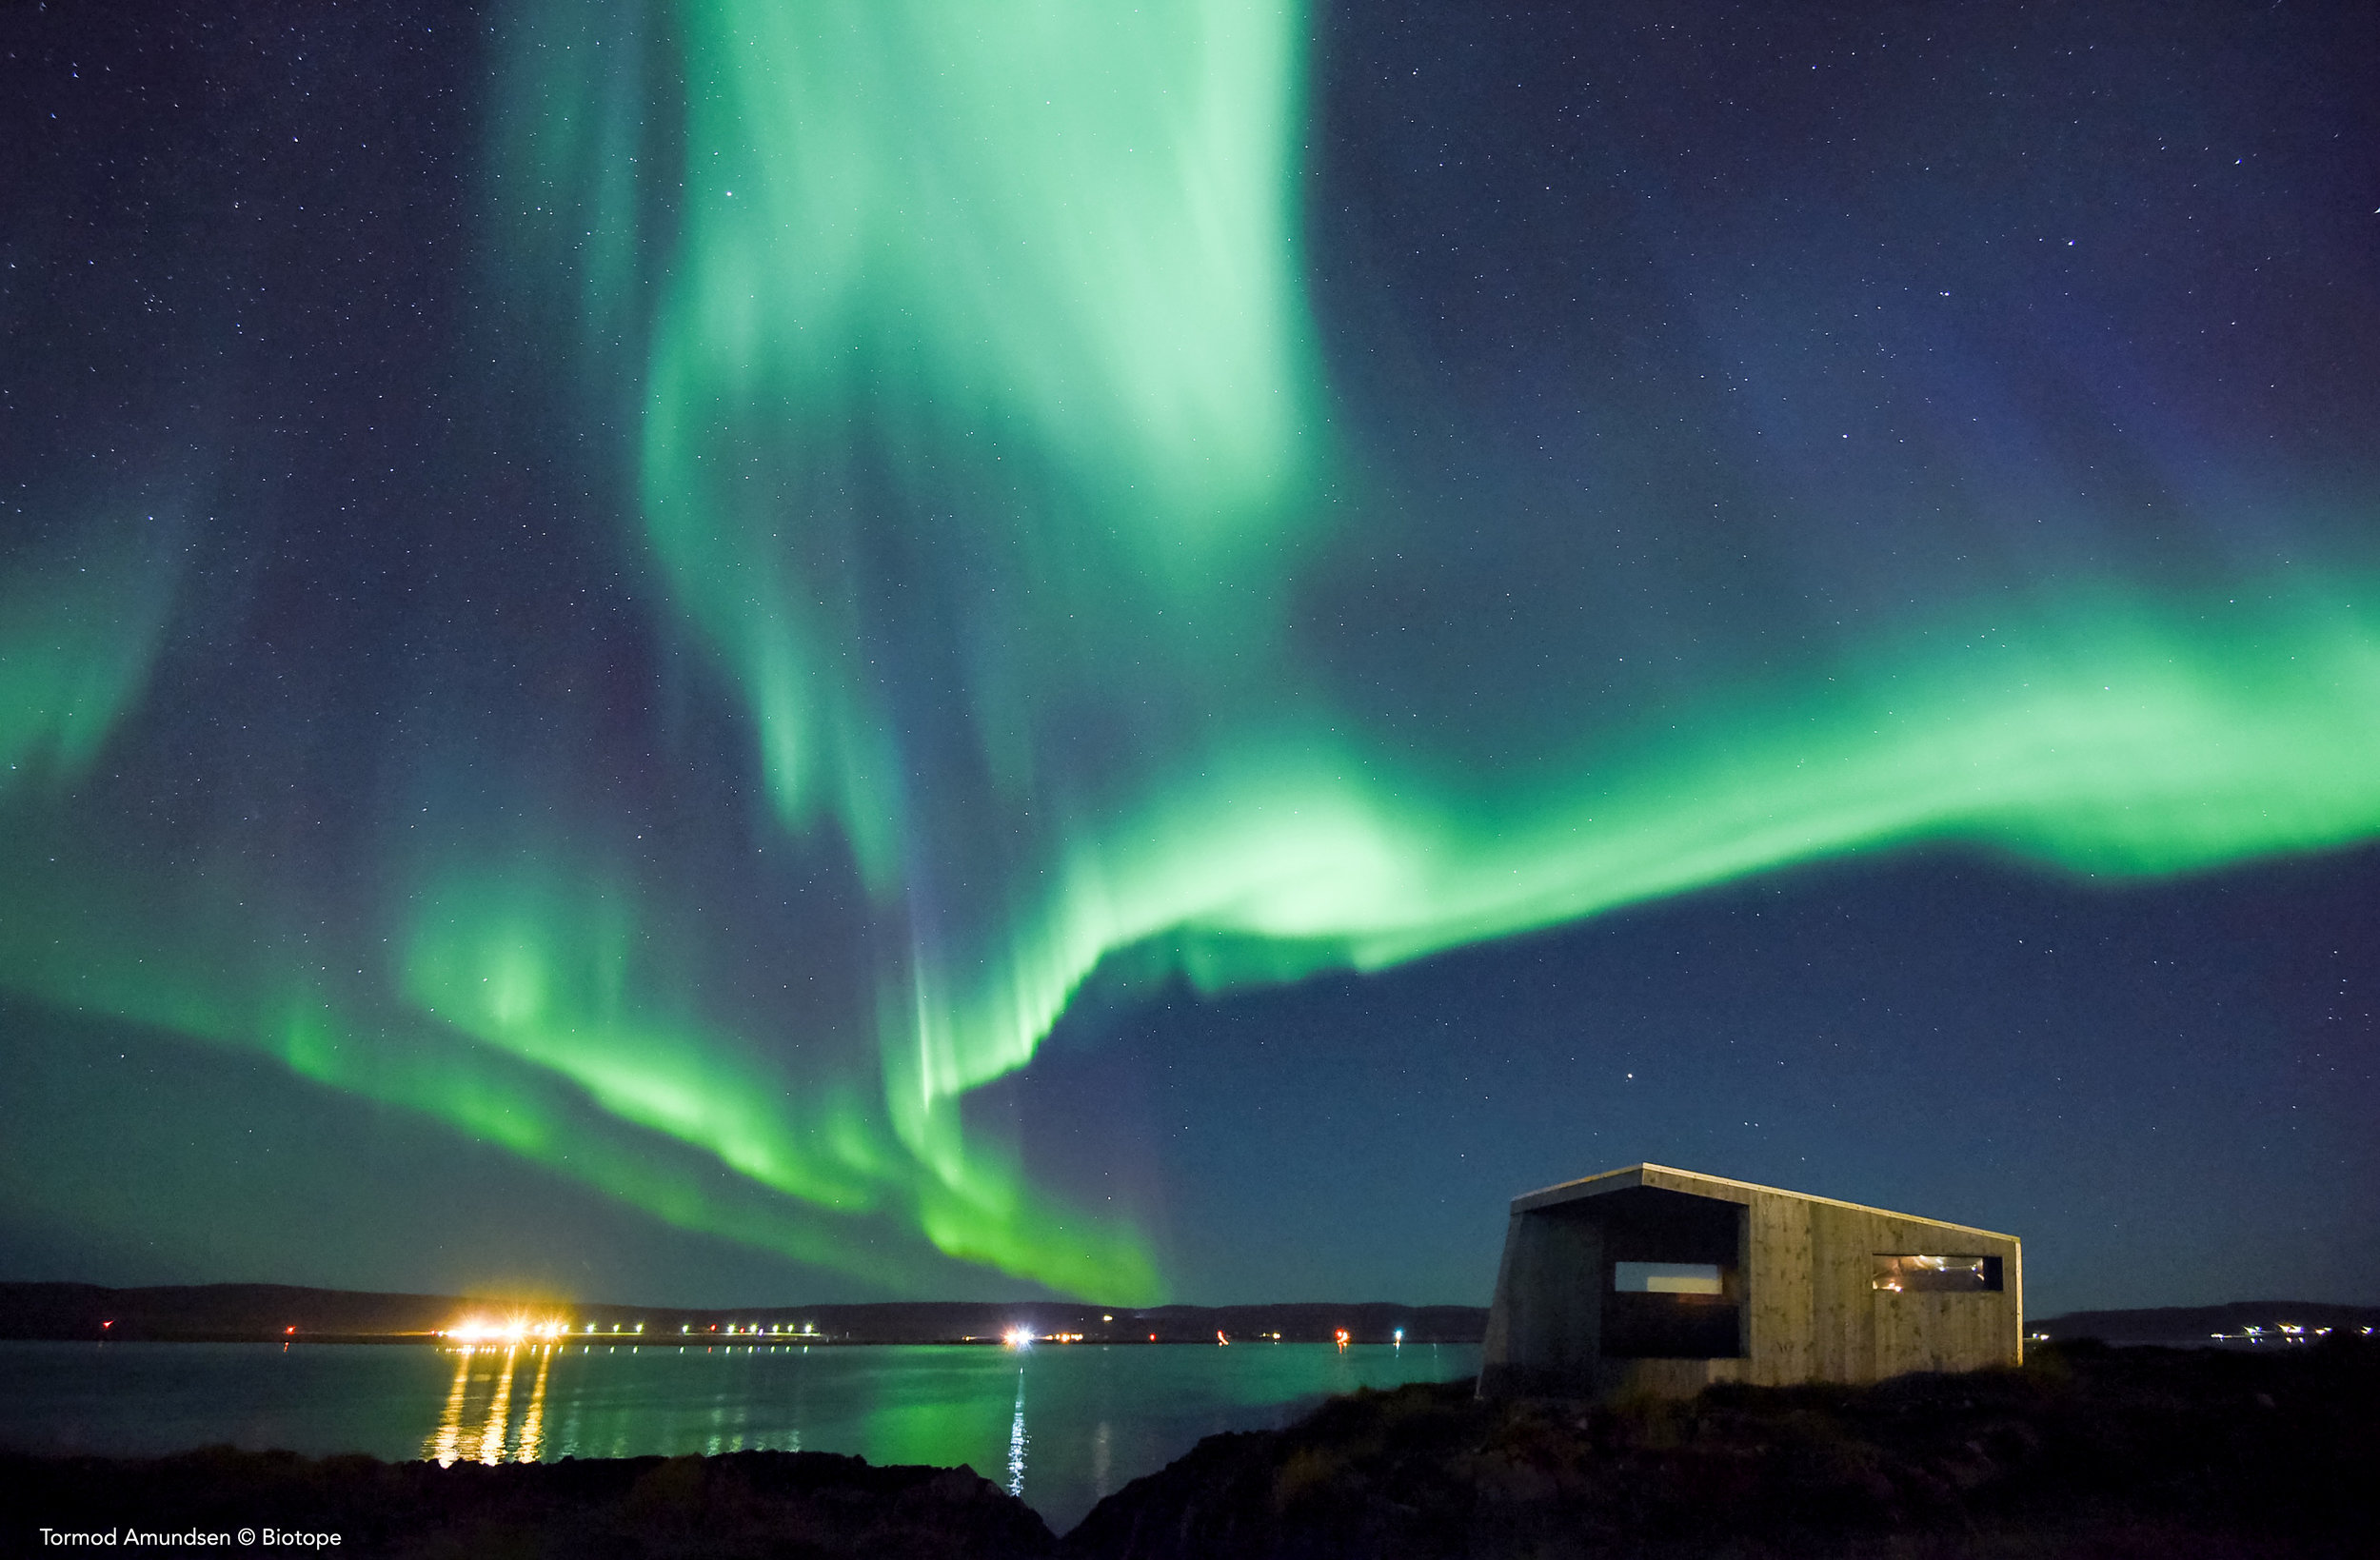 Northern lights over Vardø and Bussesundet Biotope © Tormod Amundsen